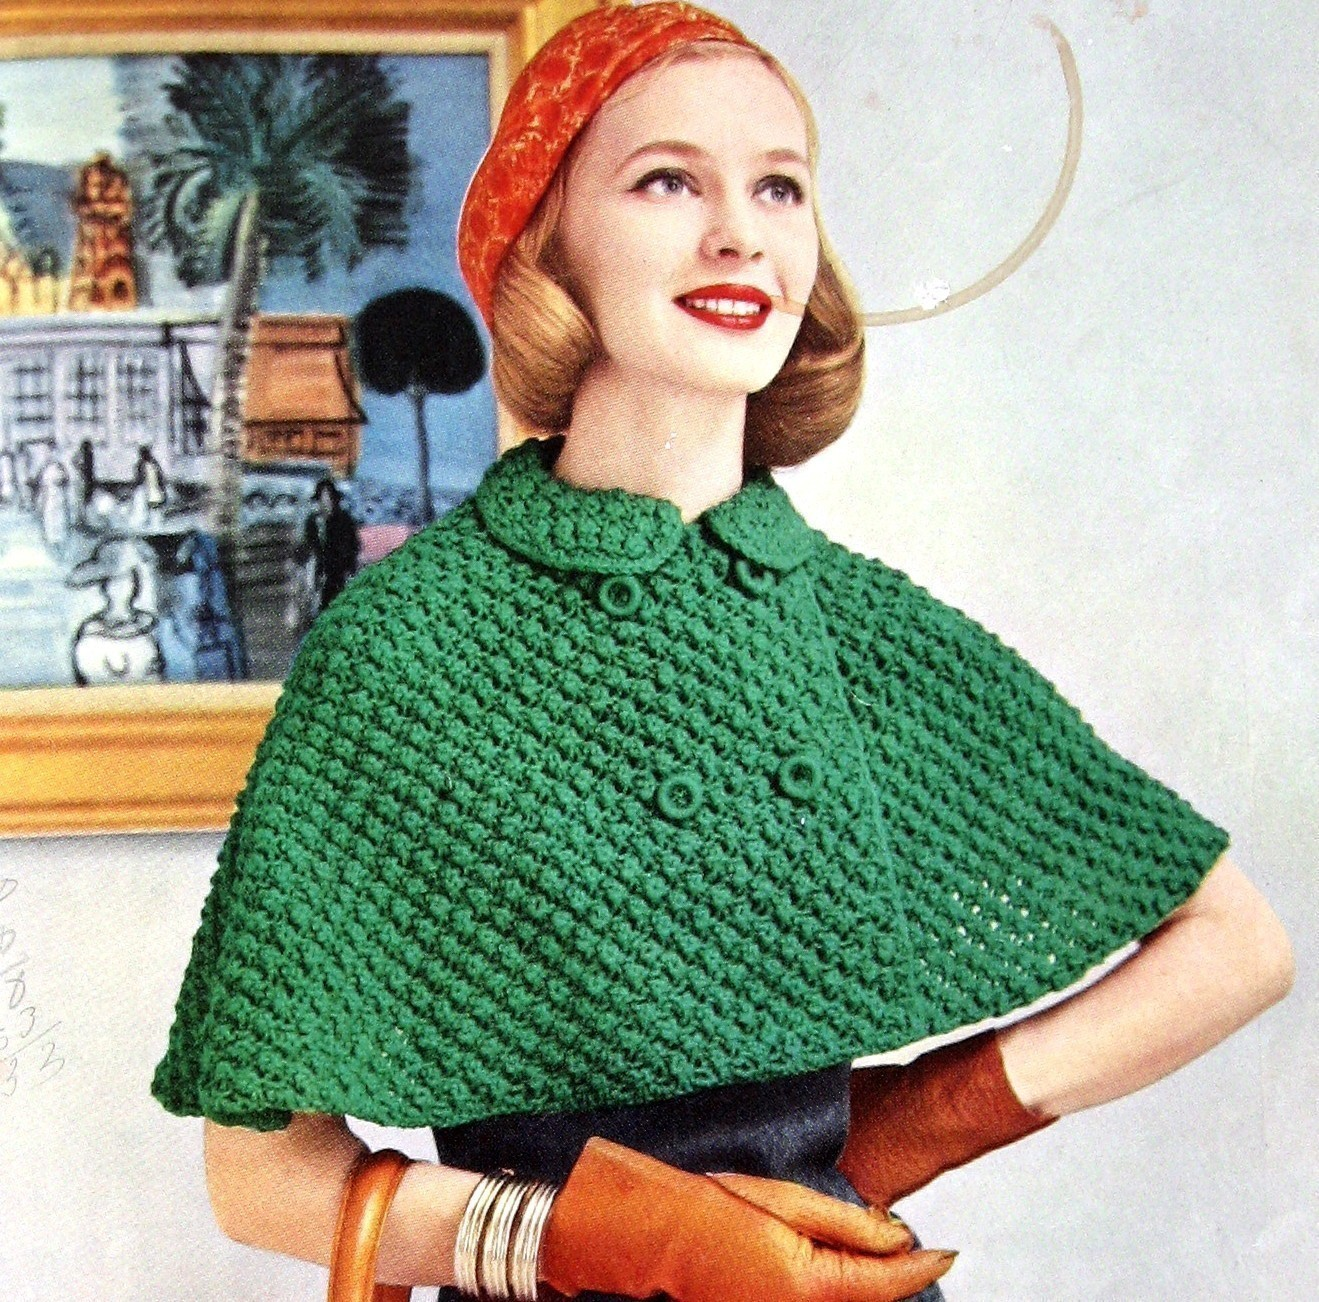 Knitting Patterns For Capes : Knitted Cape Pattern A Knitting Blog